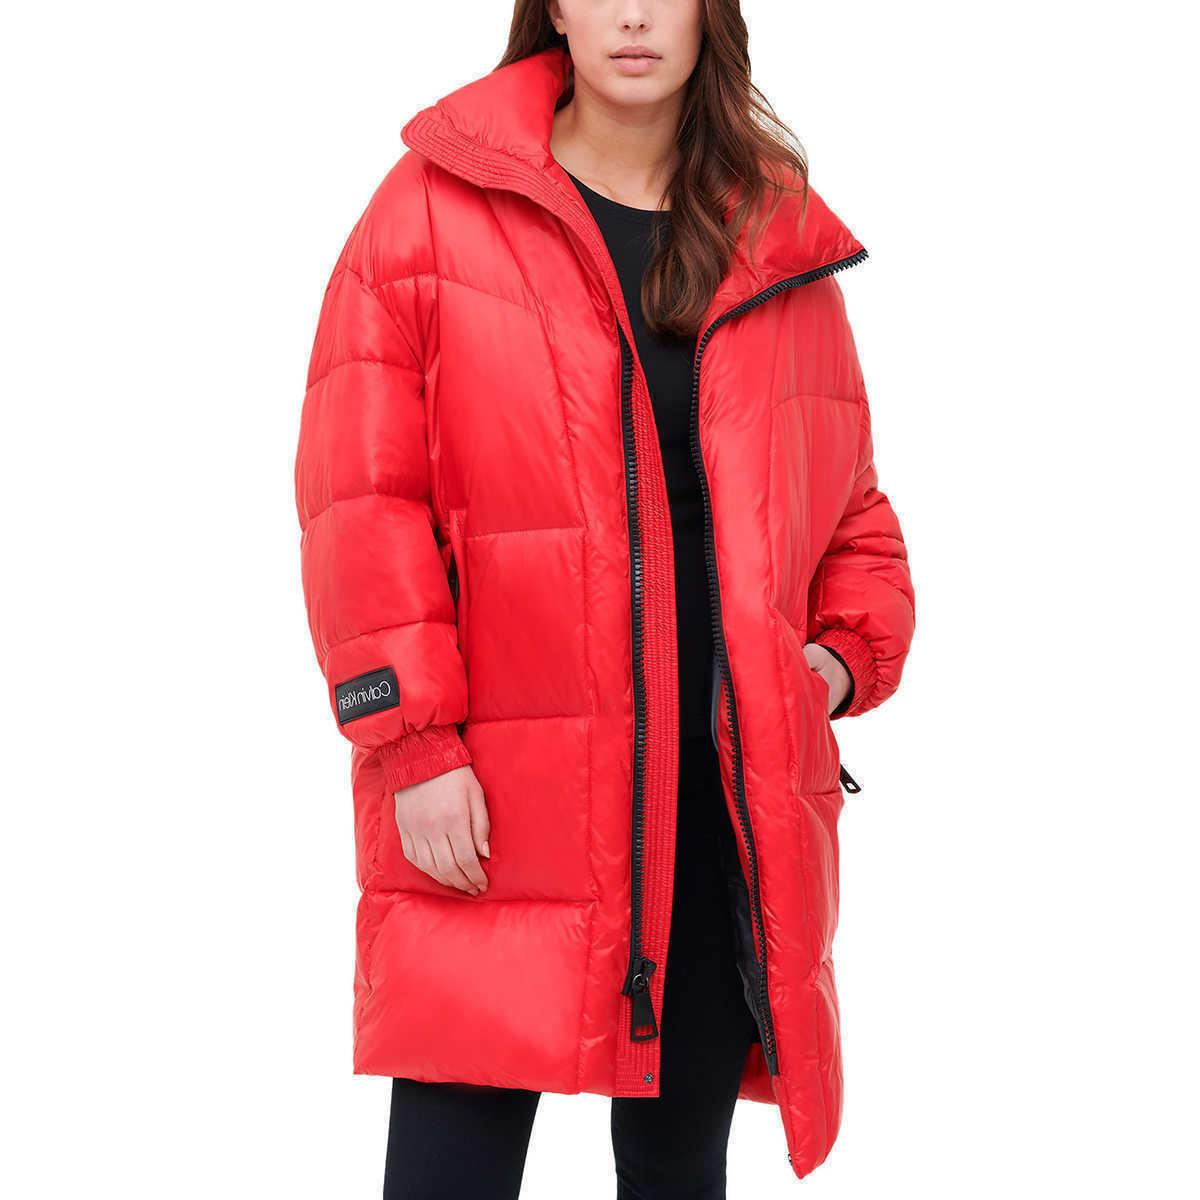 ladies womens oversized puffer jacket red new